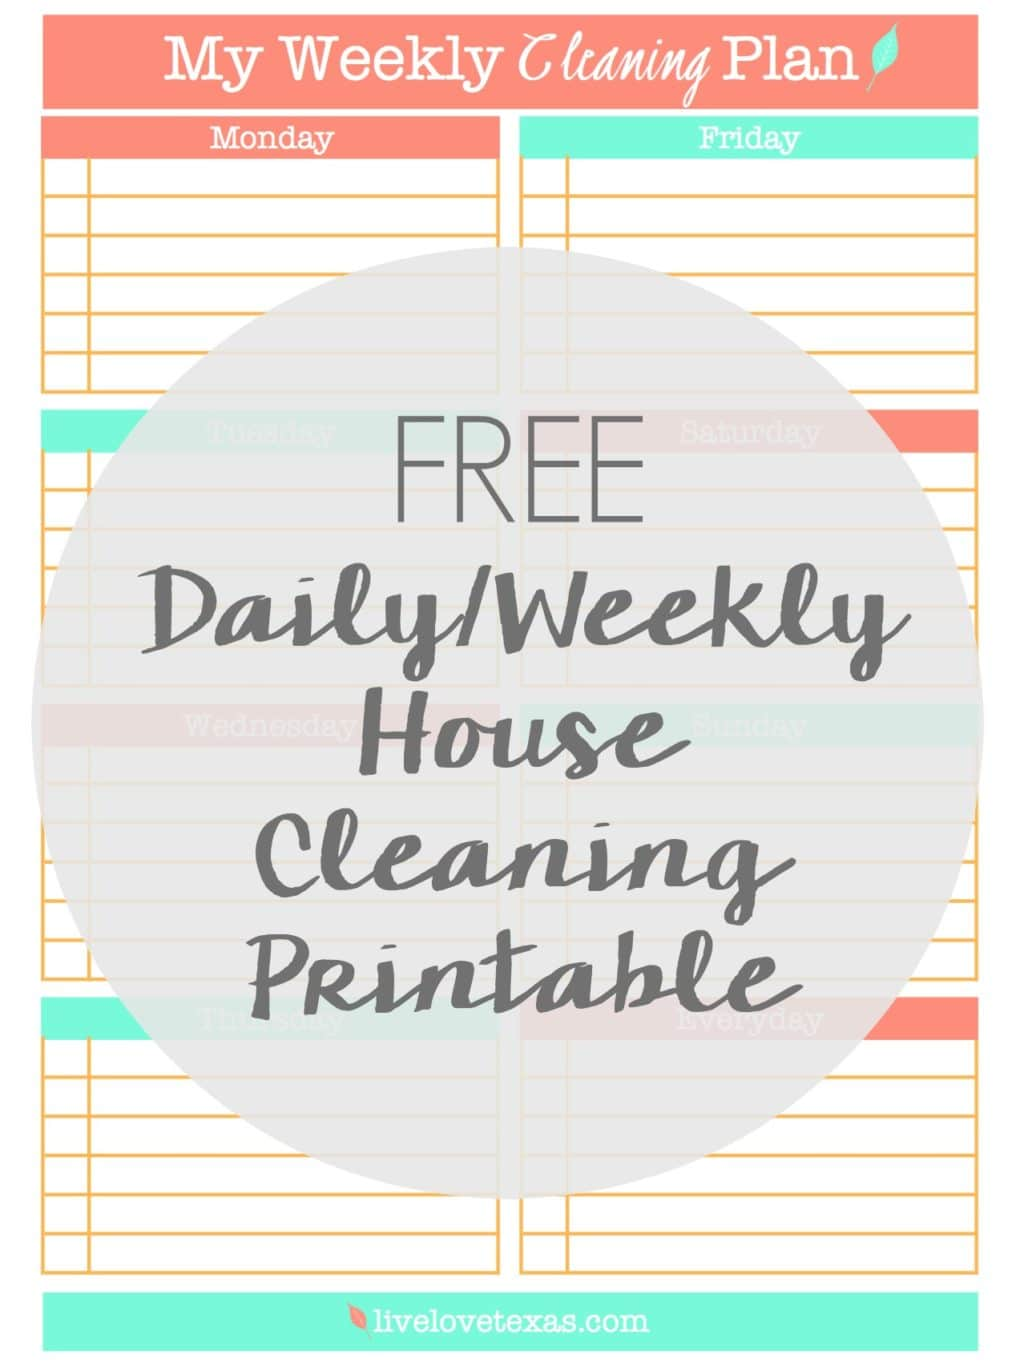 Ready to spring clean your house or just get organized and not spend your entire Saturday cleaning? Then check out this FREE Daily and Weekly Cleaning Schedule Printable